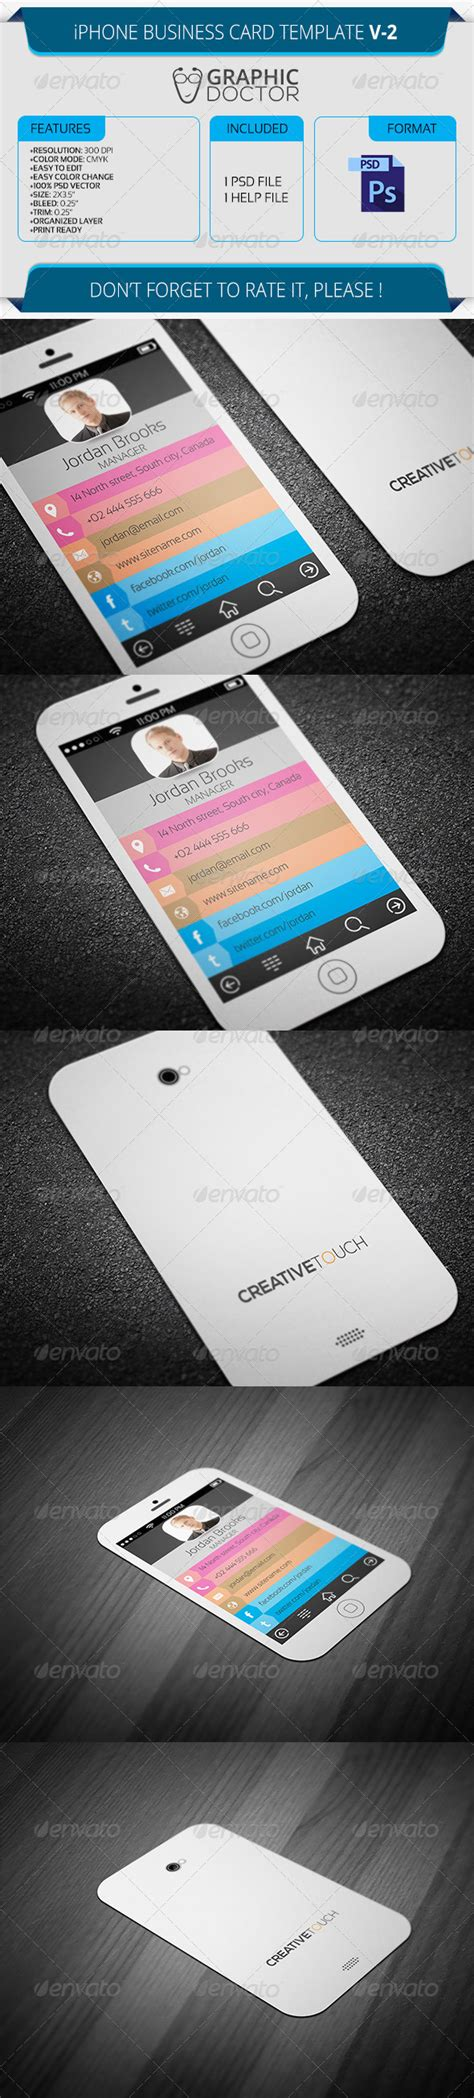 iphone business card template iphone business card template v 2 by graphicdoctor